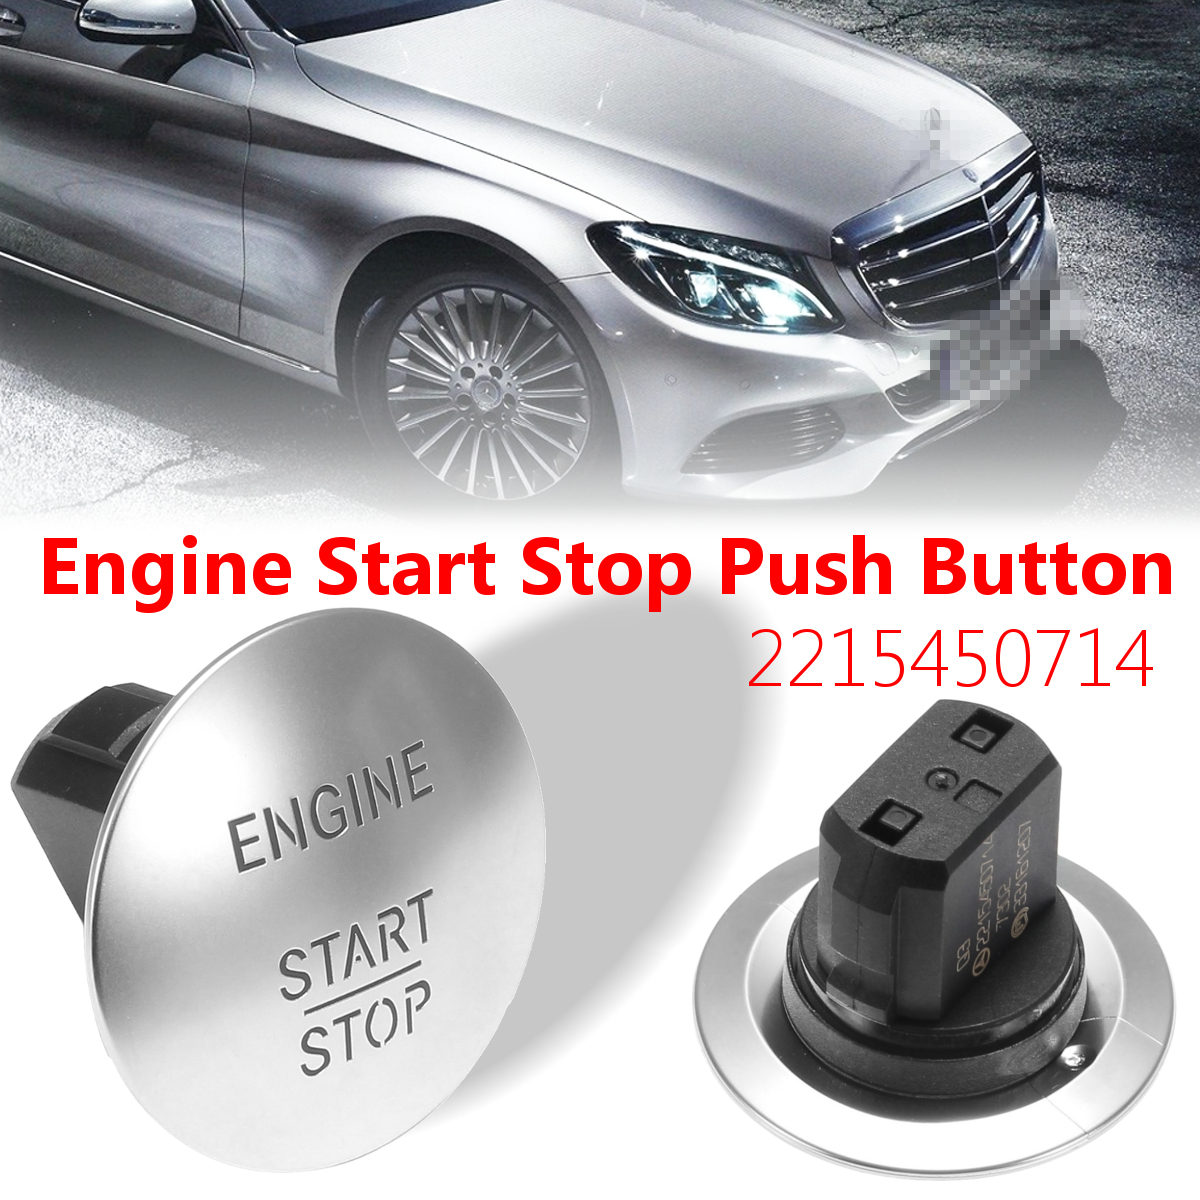 Keyless Engine Start Stop Push Button Ignition Switch For Mercedes 221545071